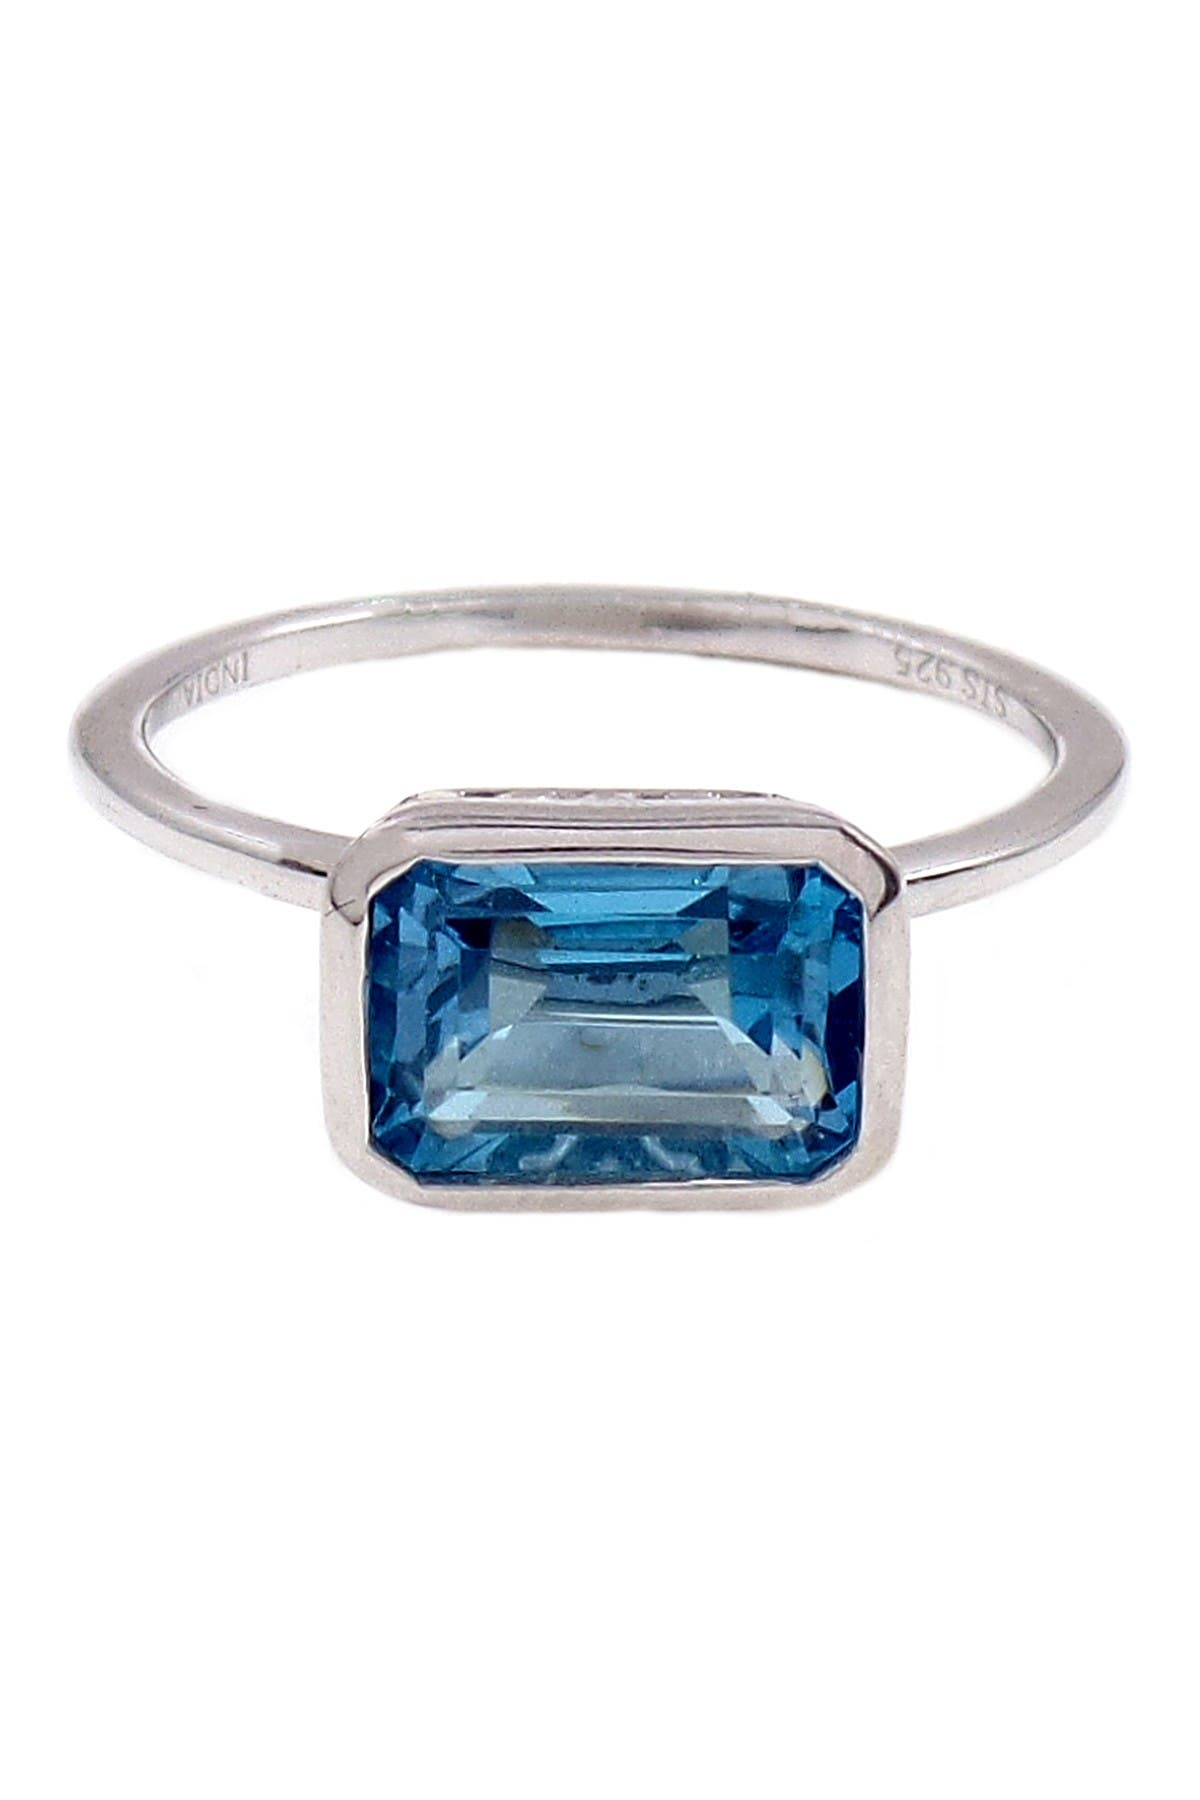 Image of Savvy Cie Sterling Silver Emerald Cut Swiss Blue Topaz Ring